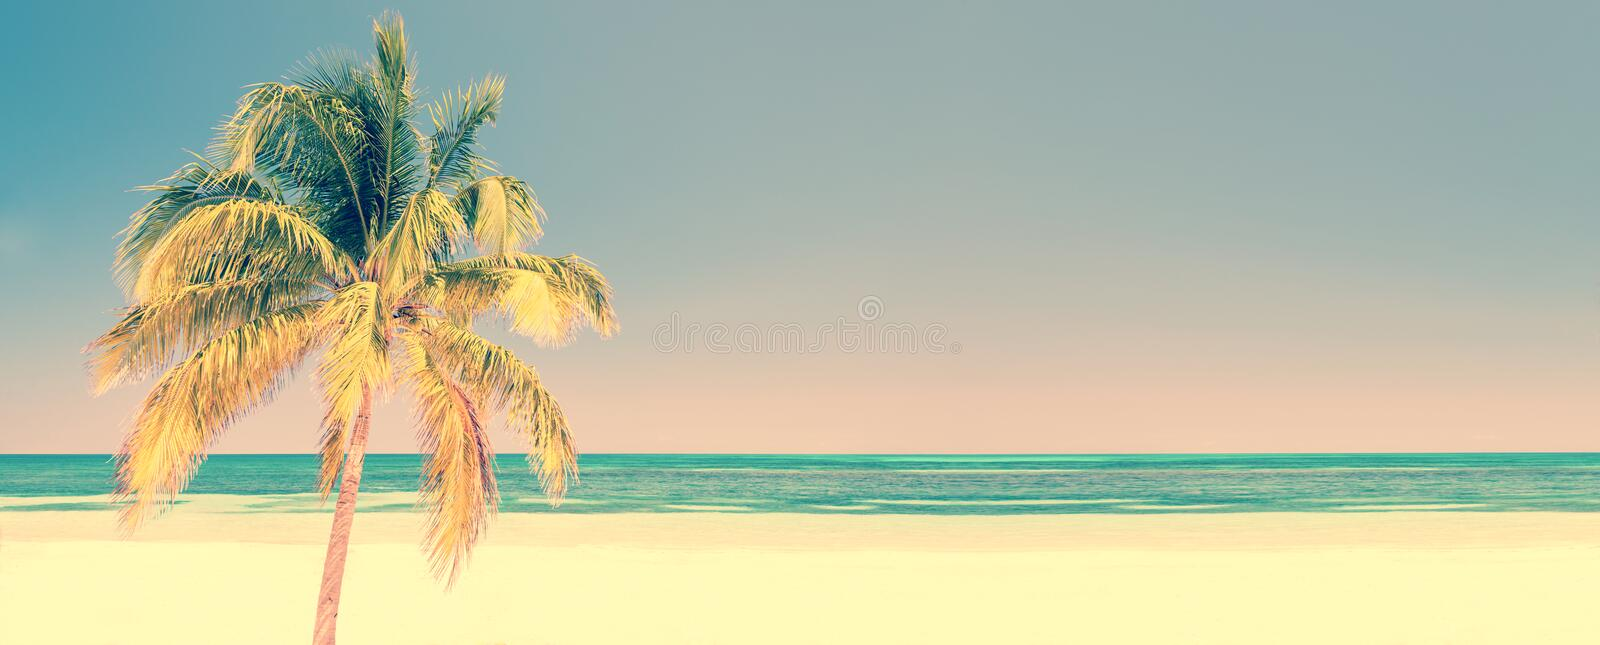 Palm tree on a beach in Cayo Levisa Cuba, panoramic background with copy space, vintage travel concept royalty free stock images